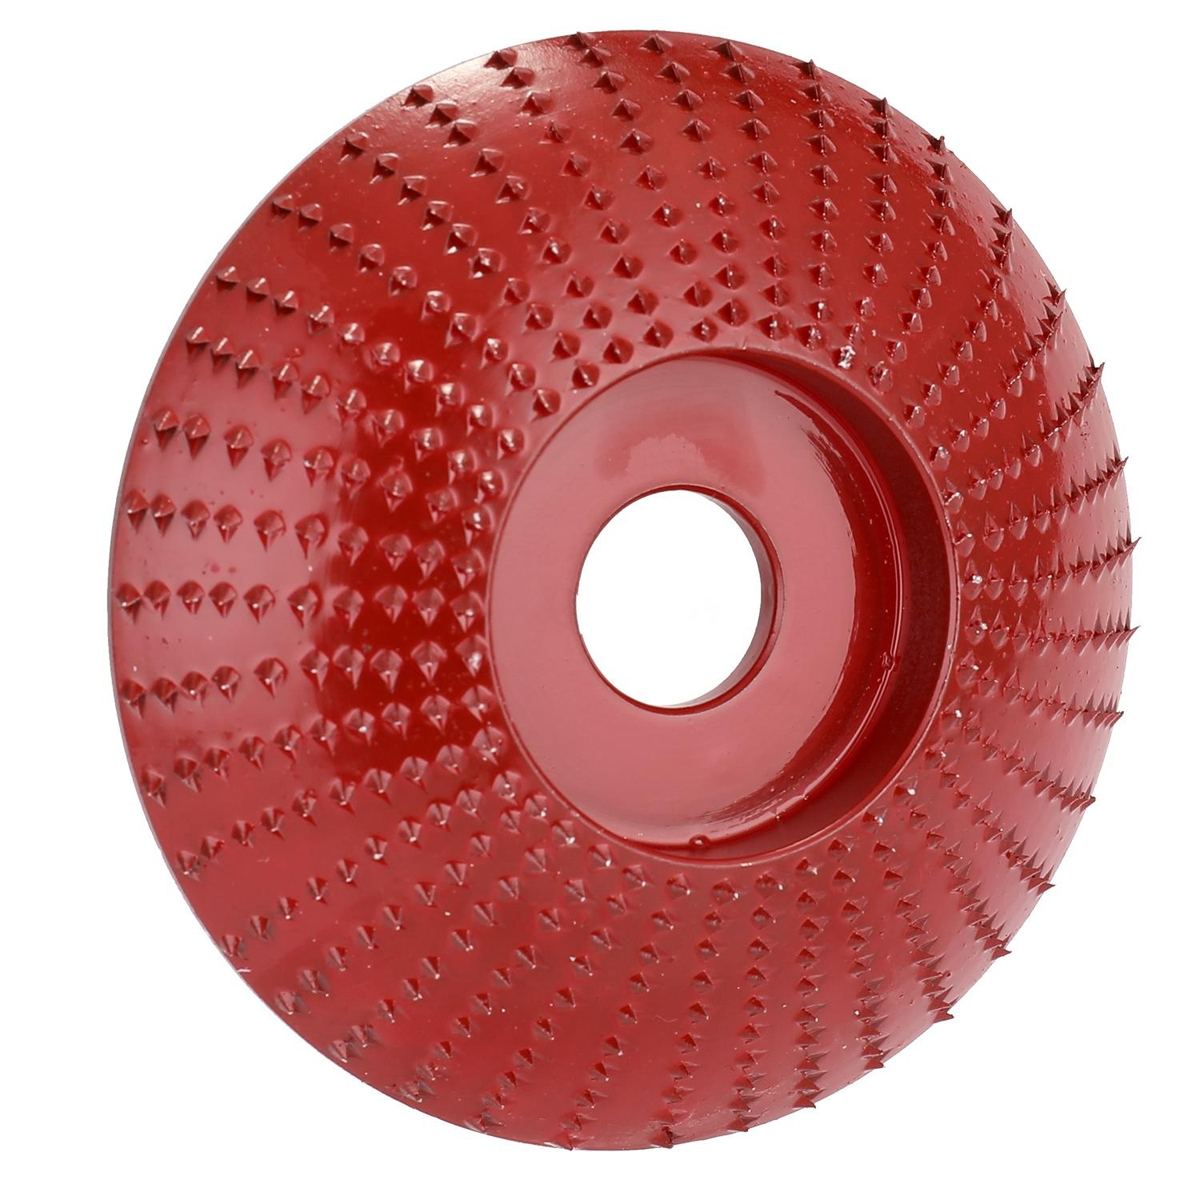 100mm Wood Grinding Wheel Angle Grinder Disc Wood Carving Disc Sanding Abrasive Tool 16mm Bore